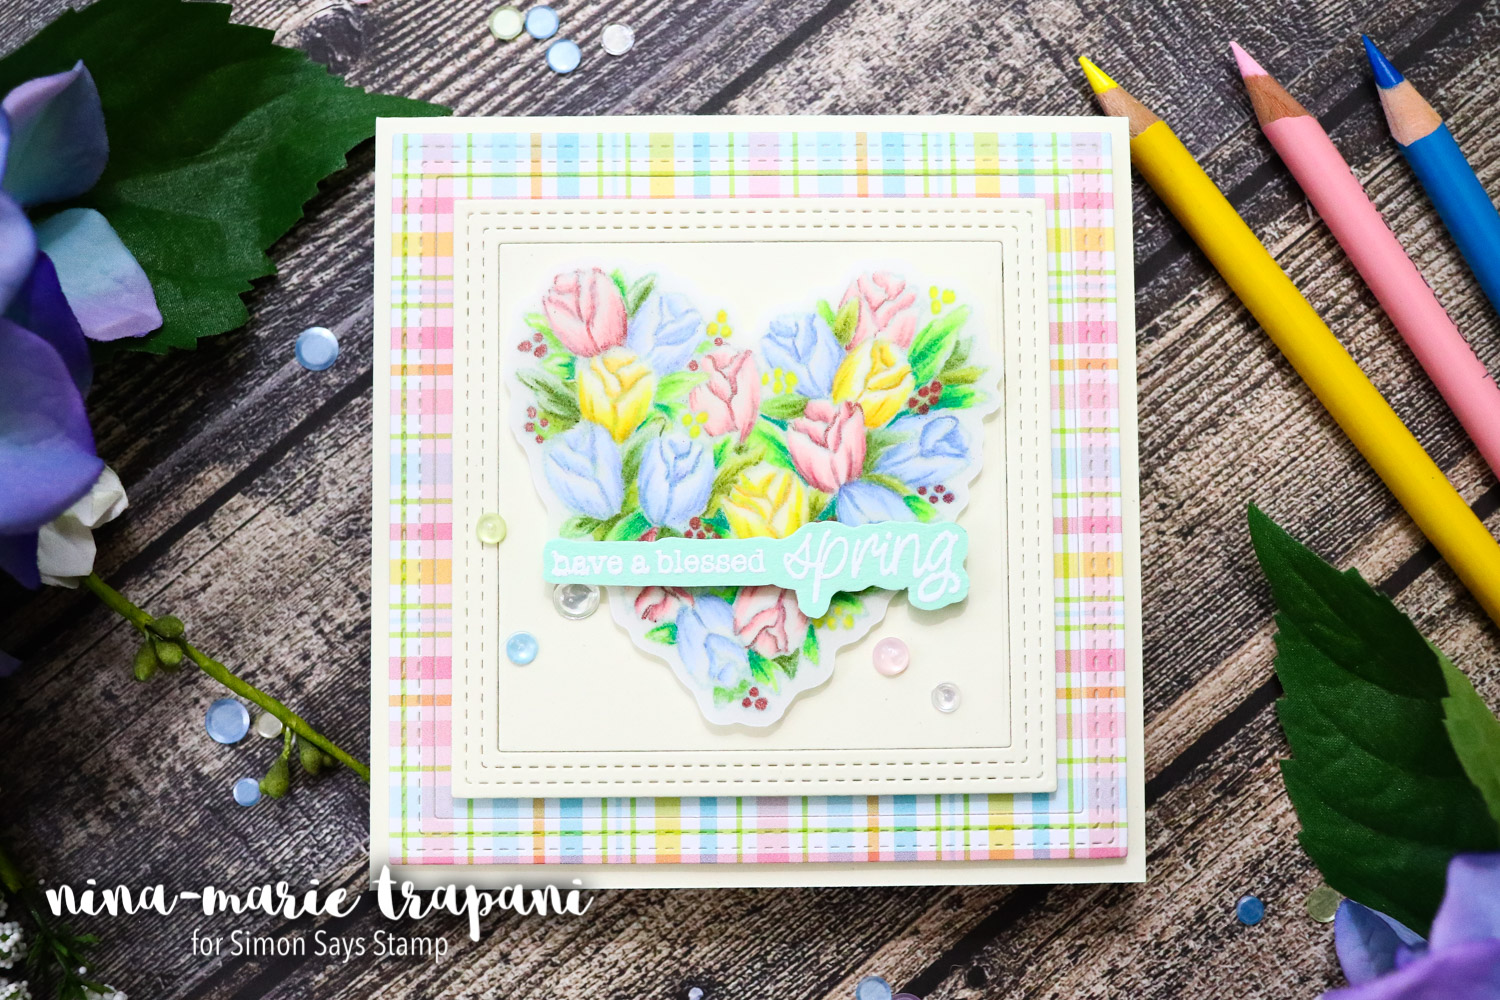 2 Ways to Use Simon's Easter Limited Edition Kit + See Inside